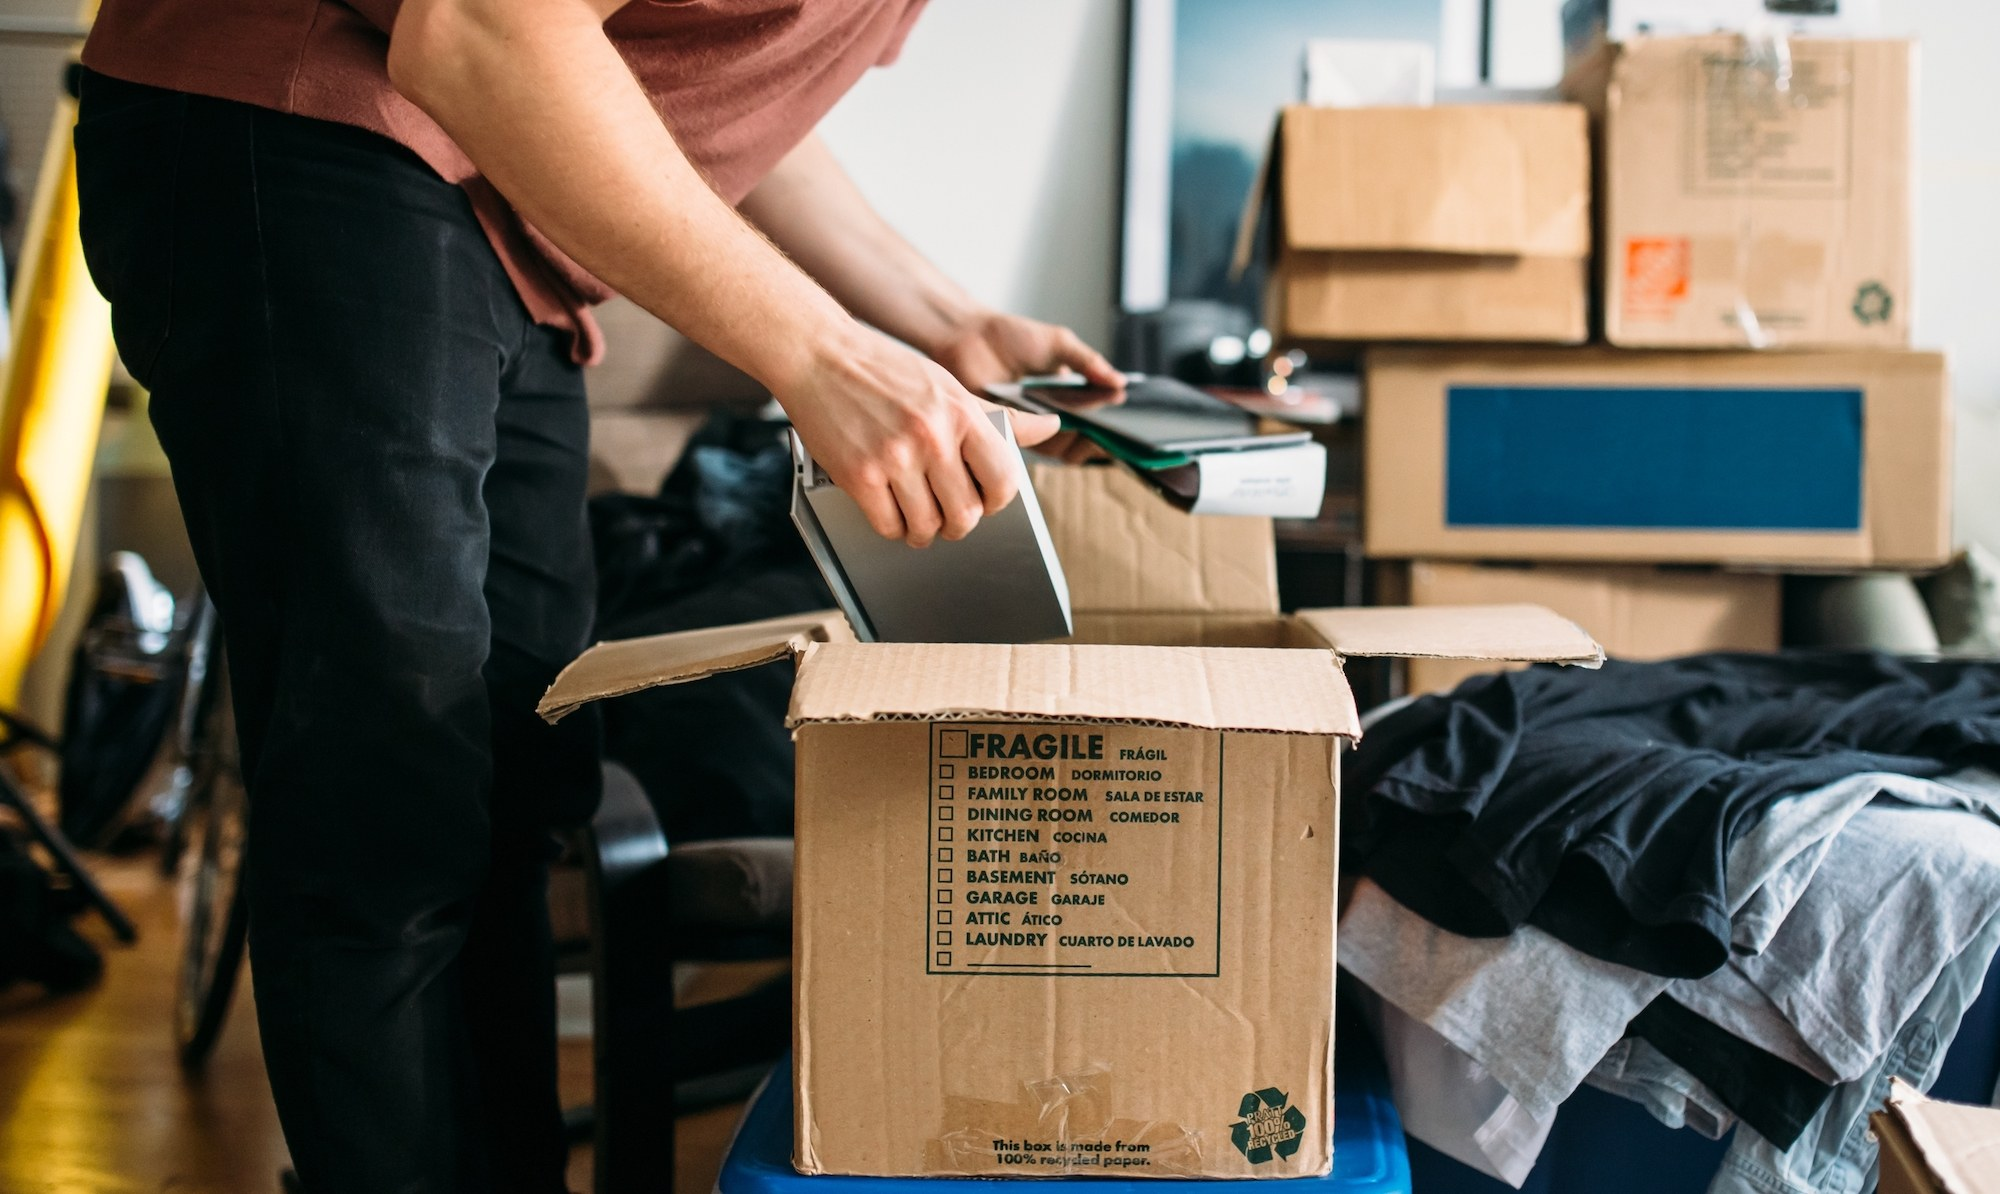 a person packs boxes to see if they can afford to move out